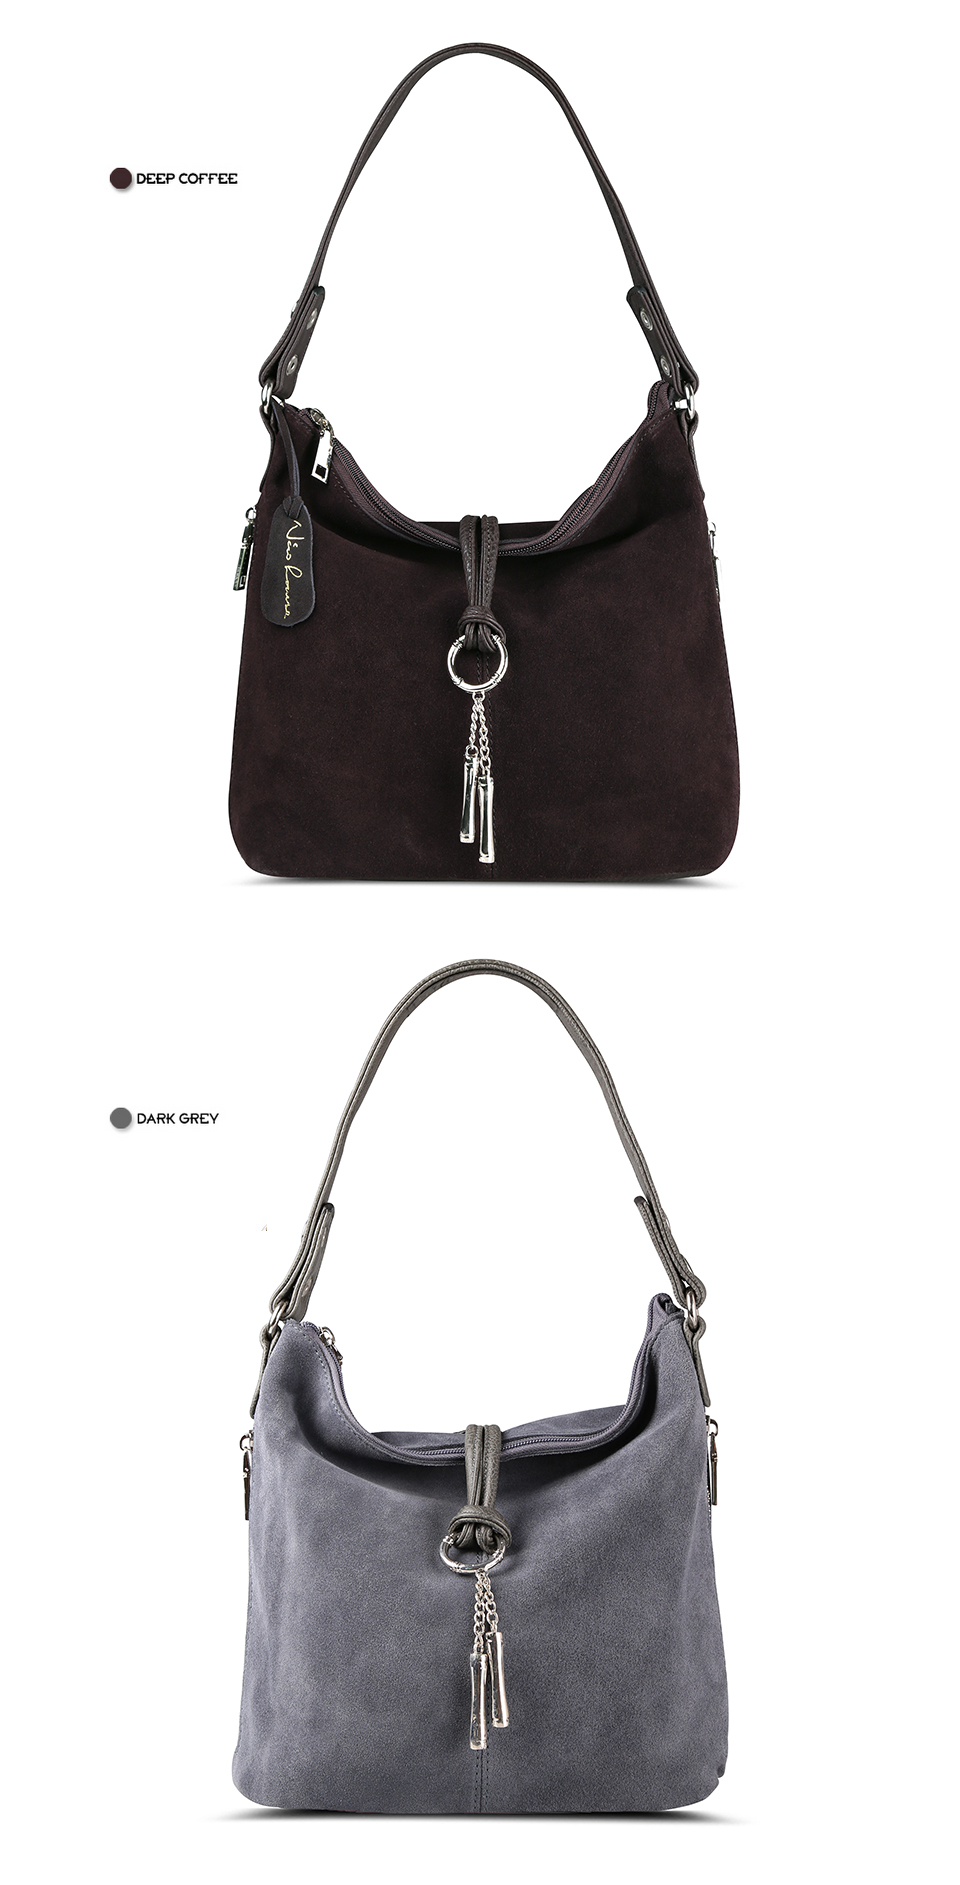 HTB181JMcgMPMeJjy1Xcq6xpppXat - Fashion Women Split Leather Shoulder Bag Female Suede Casual Crossbody handbag Casual Lady Messenger Hobo Top-handle Bags